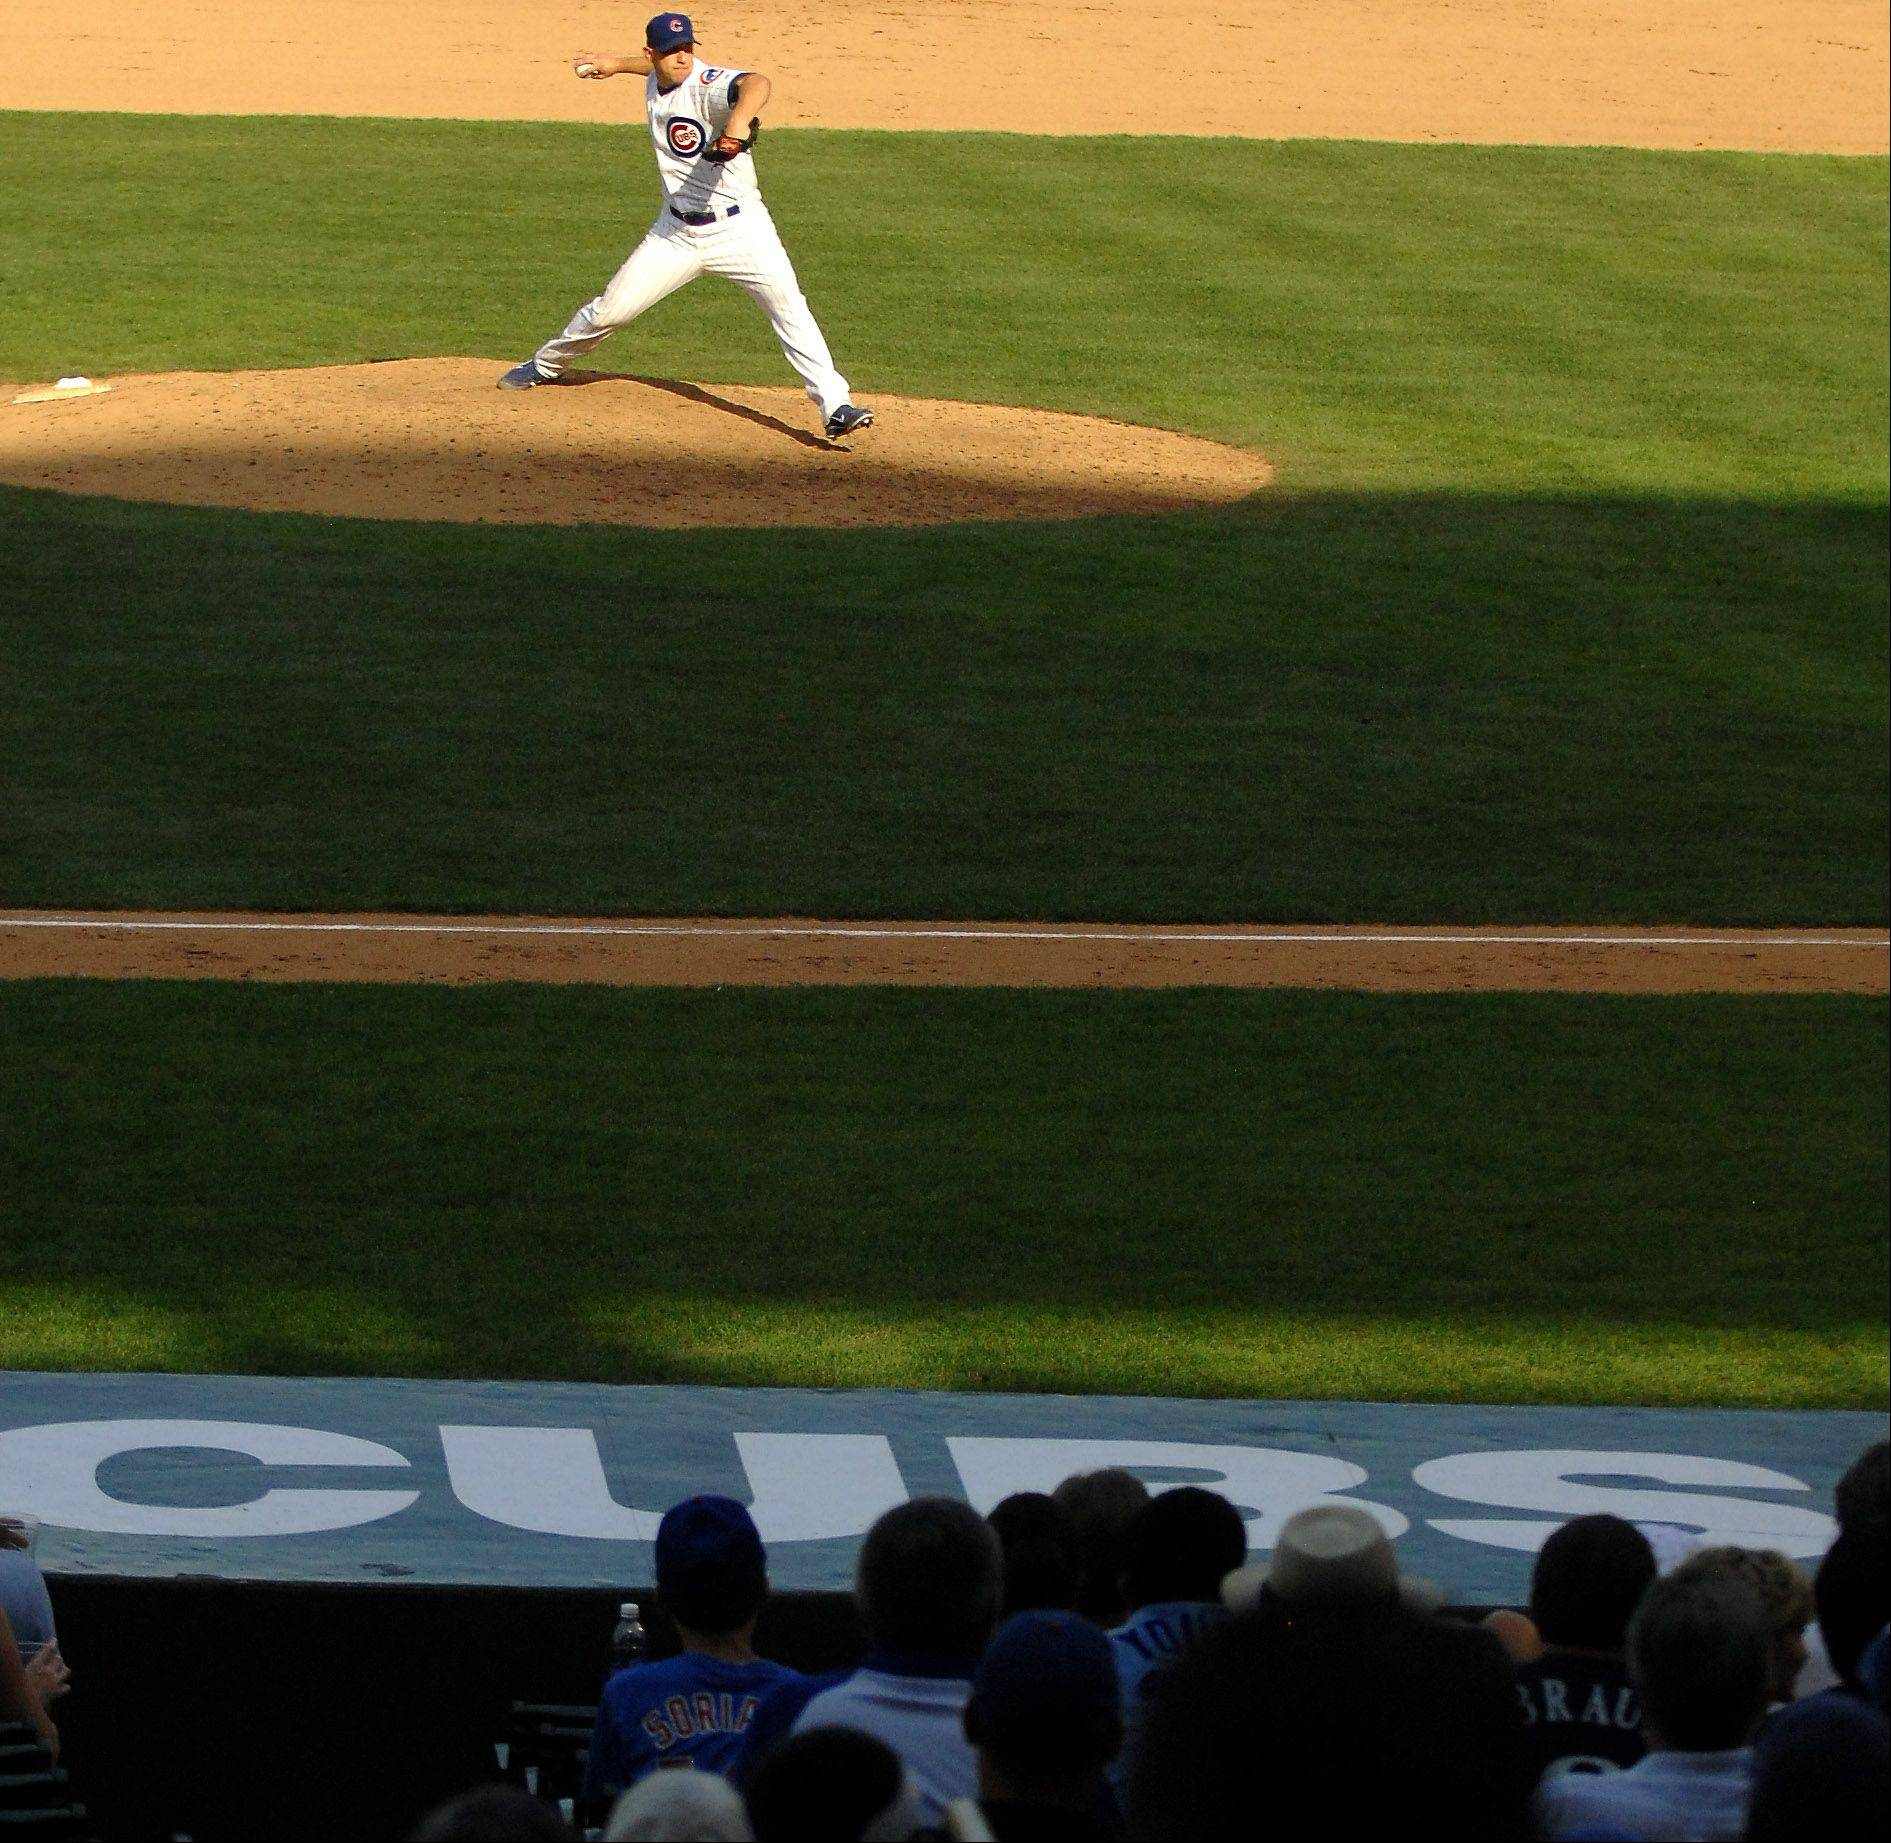 Chicago Cubs relief pitcher Shawn Camp delivers a pitch.